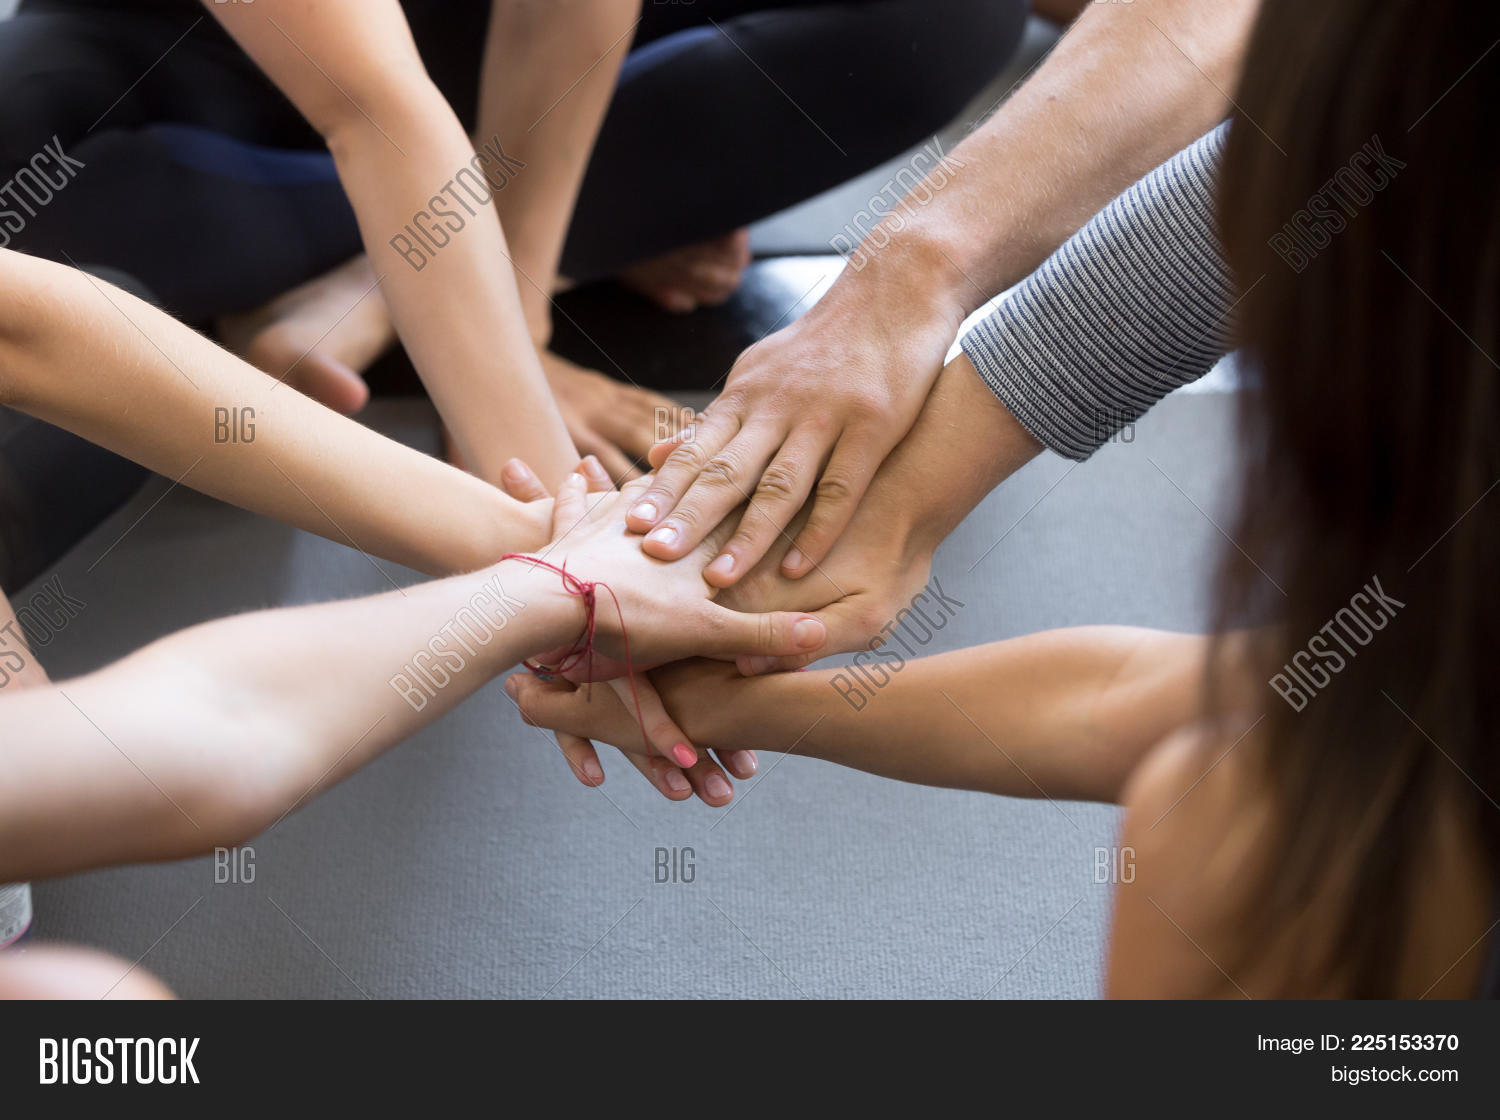 Close high five hand image photo free trial bigstock close up of high five hand gesture symbol of common celebration or greeting people m4hsunfo